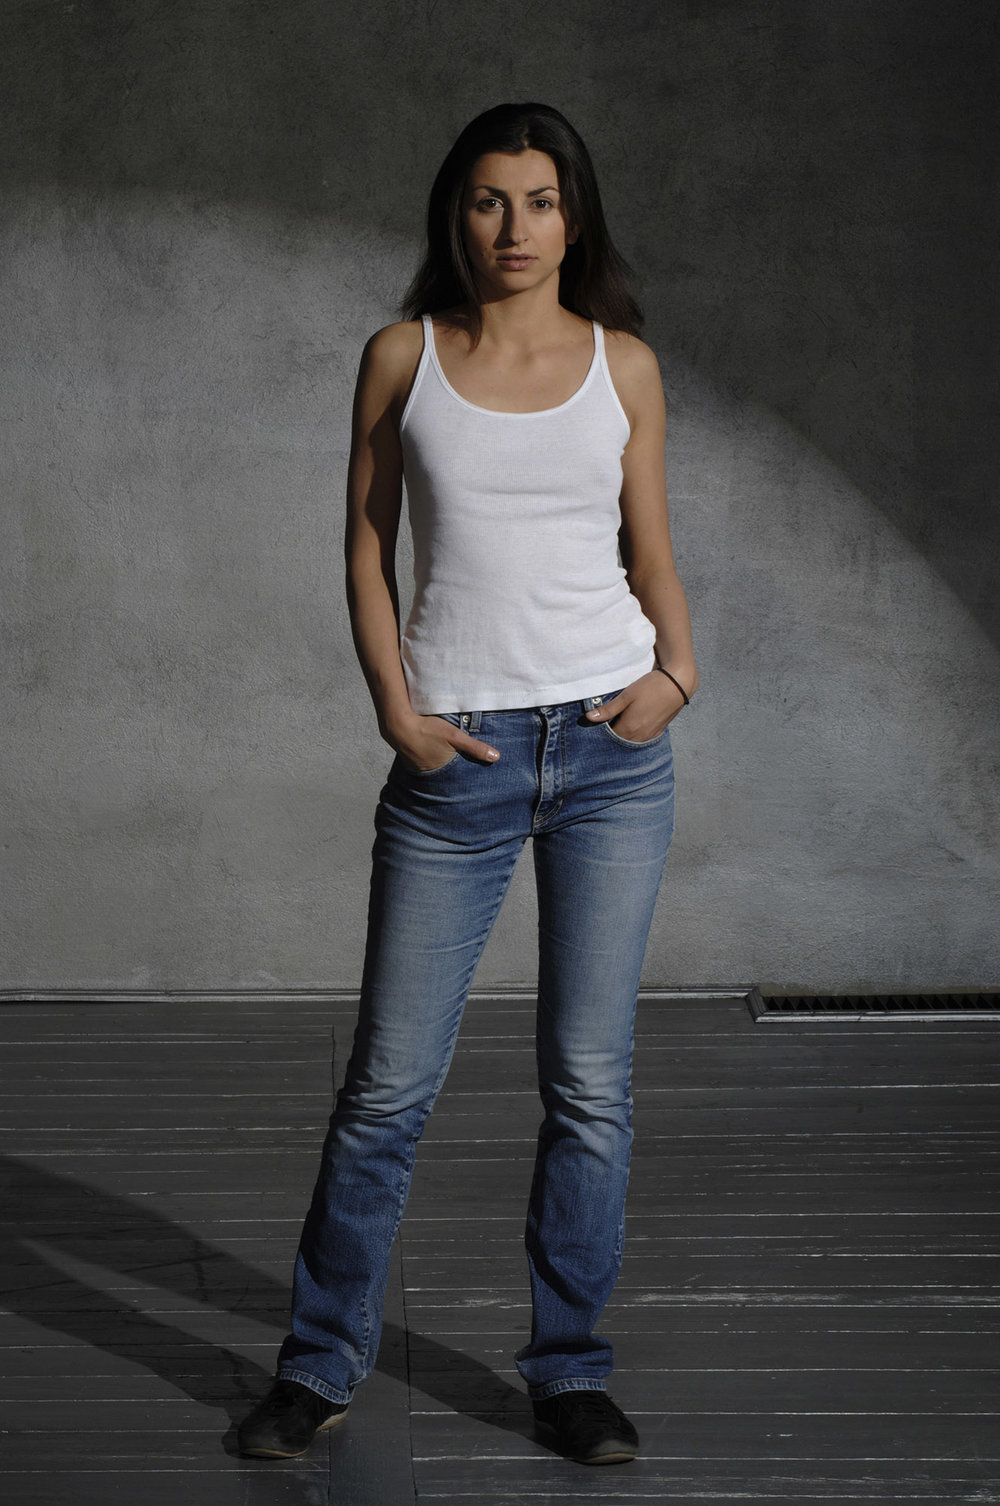 Dark haired girl in a white t-shirt  and jeans